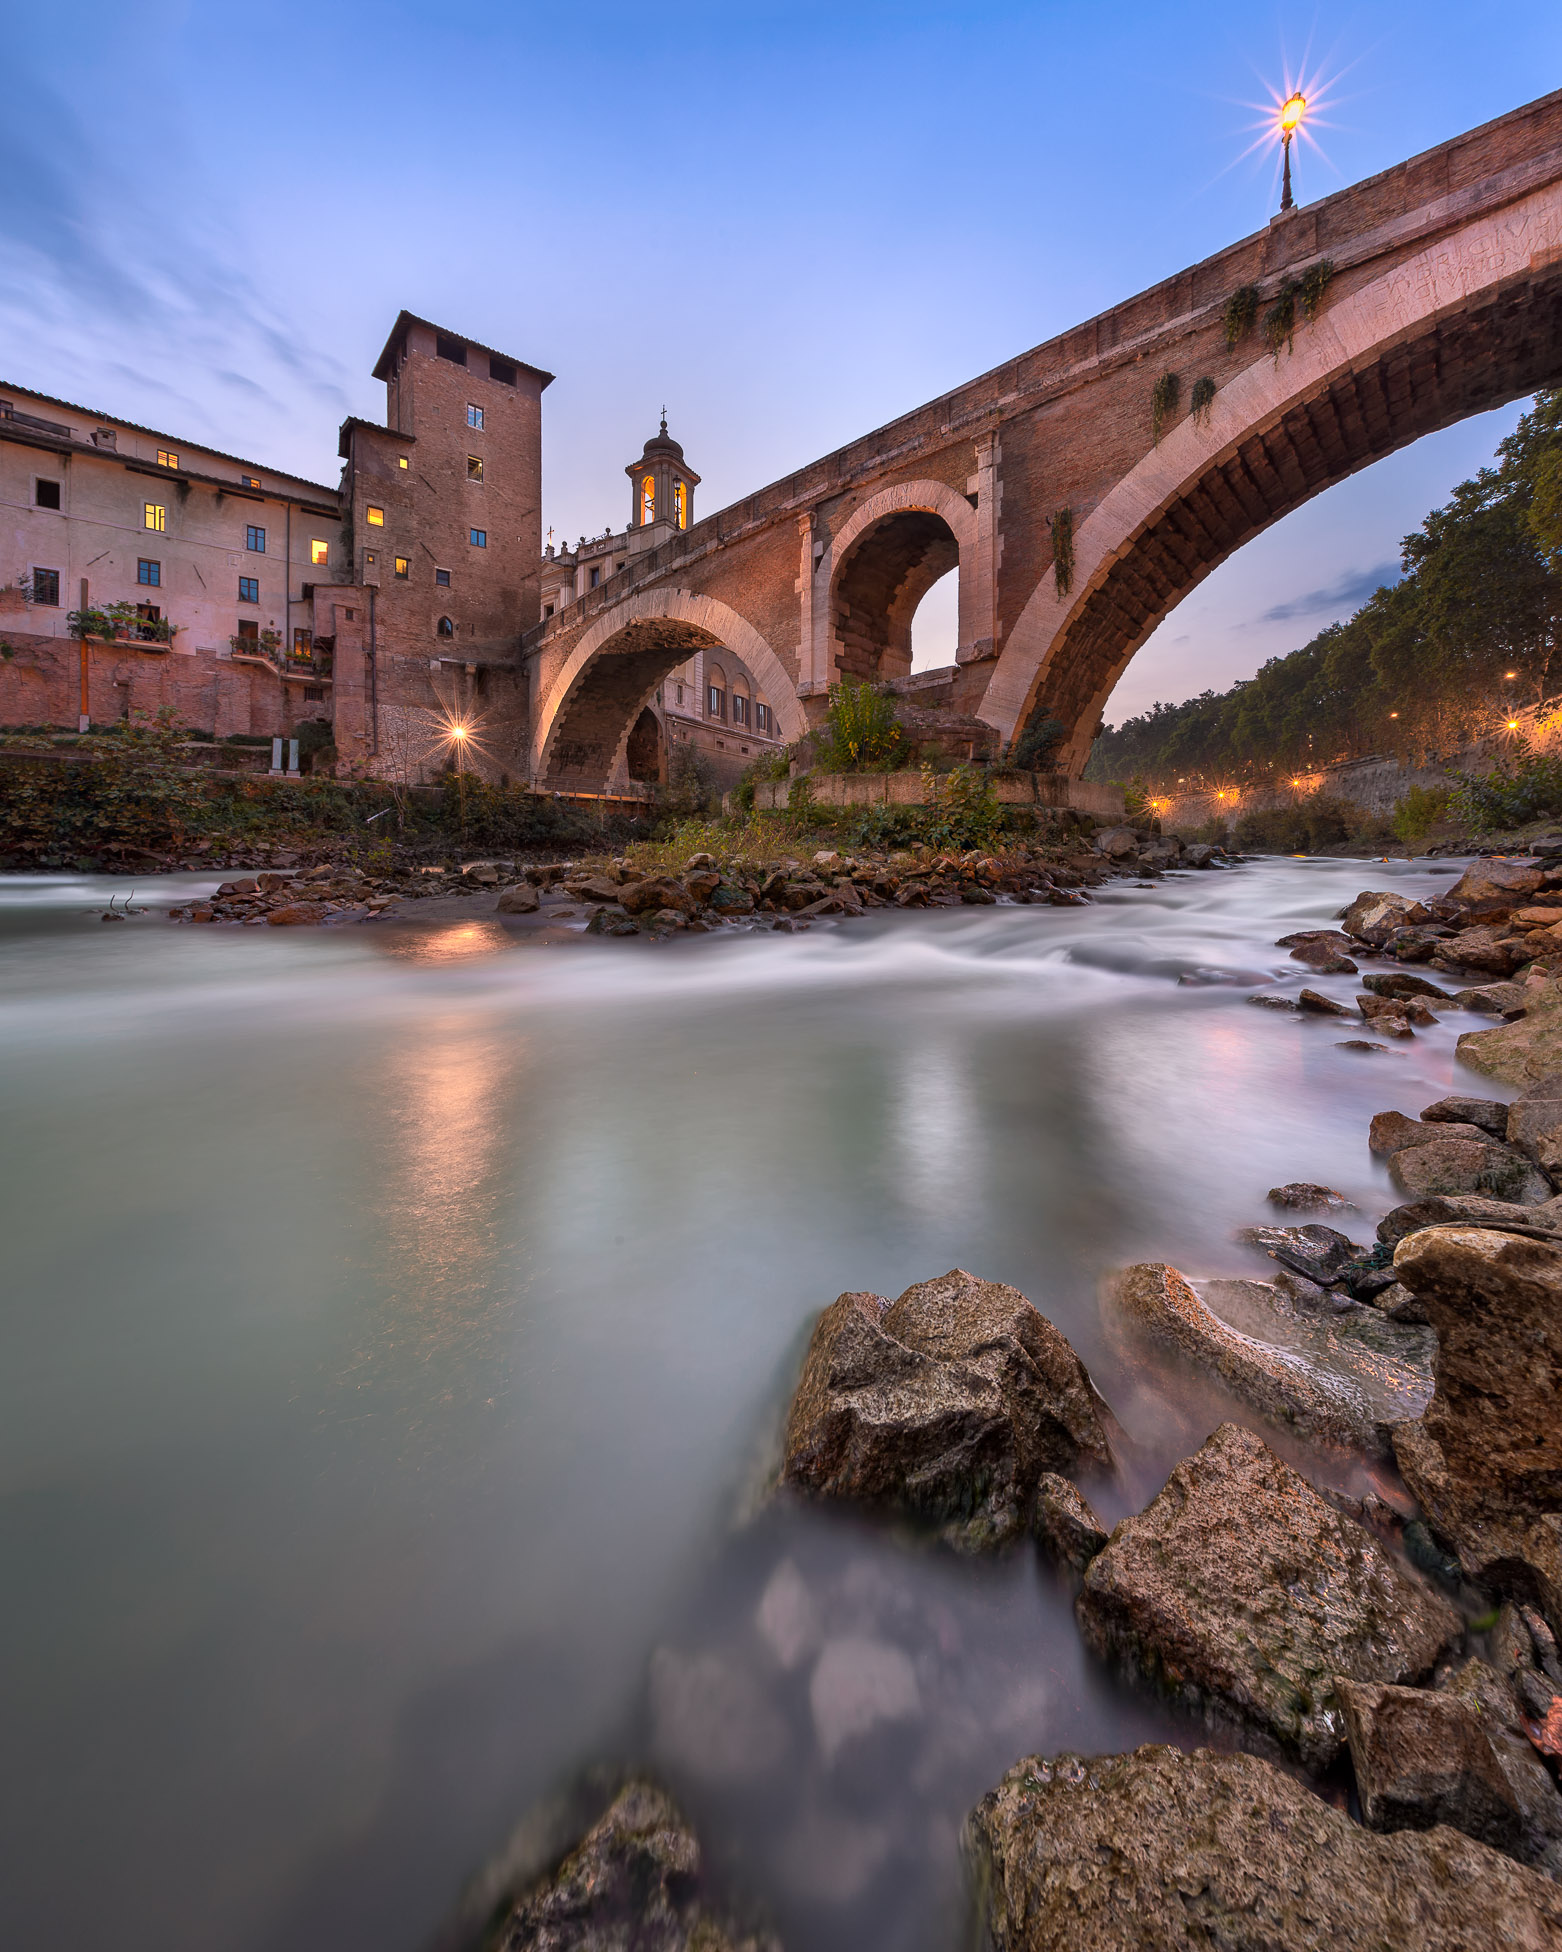 Fabricius Bridge and Tiber Island in the Evening, Rome, Italy